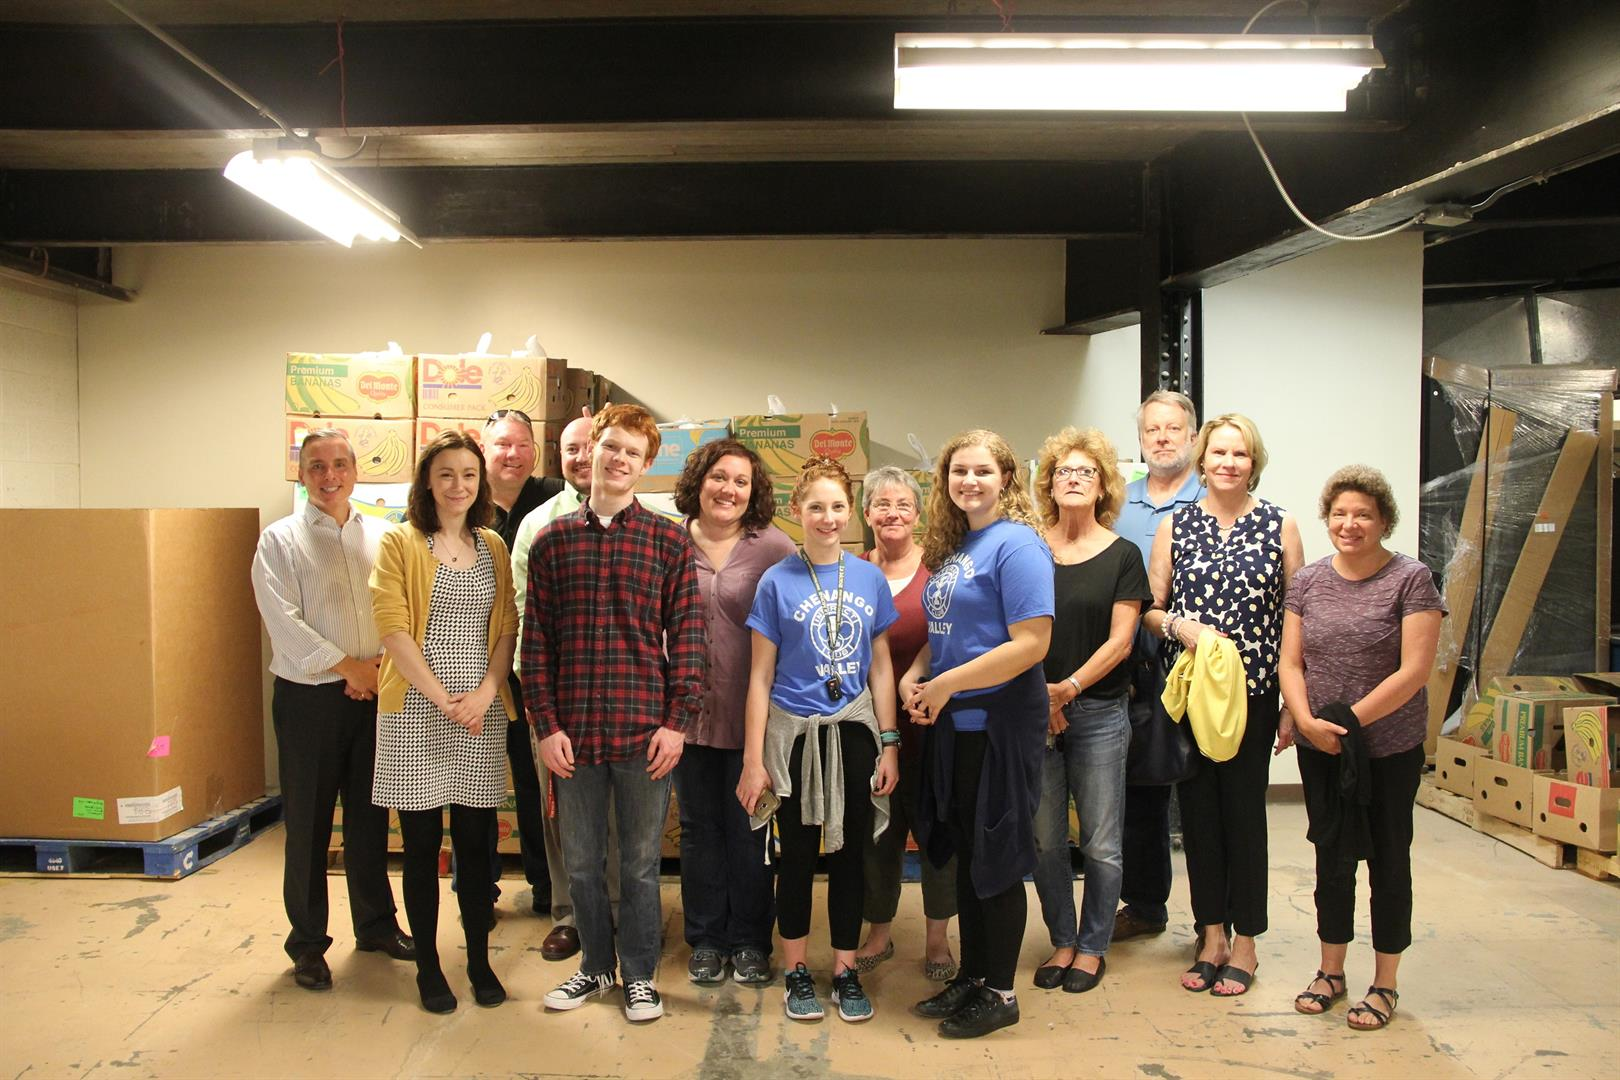 c v students staff and hillcrest rotary club members who helped fill bags of food for backpack program